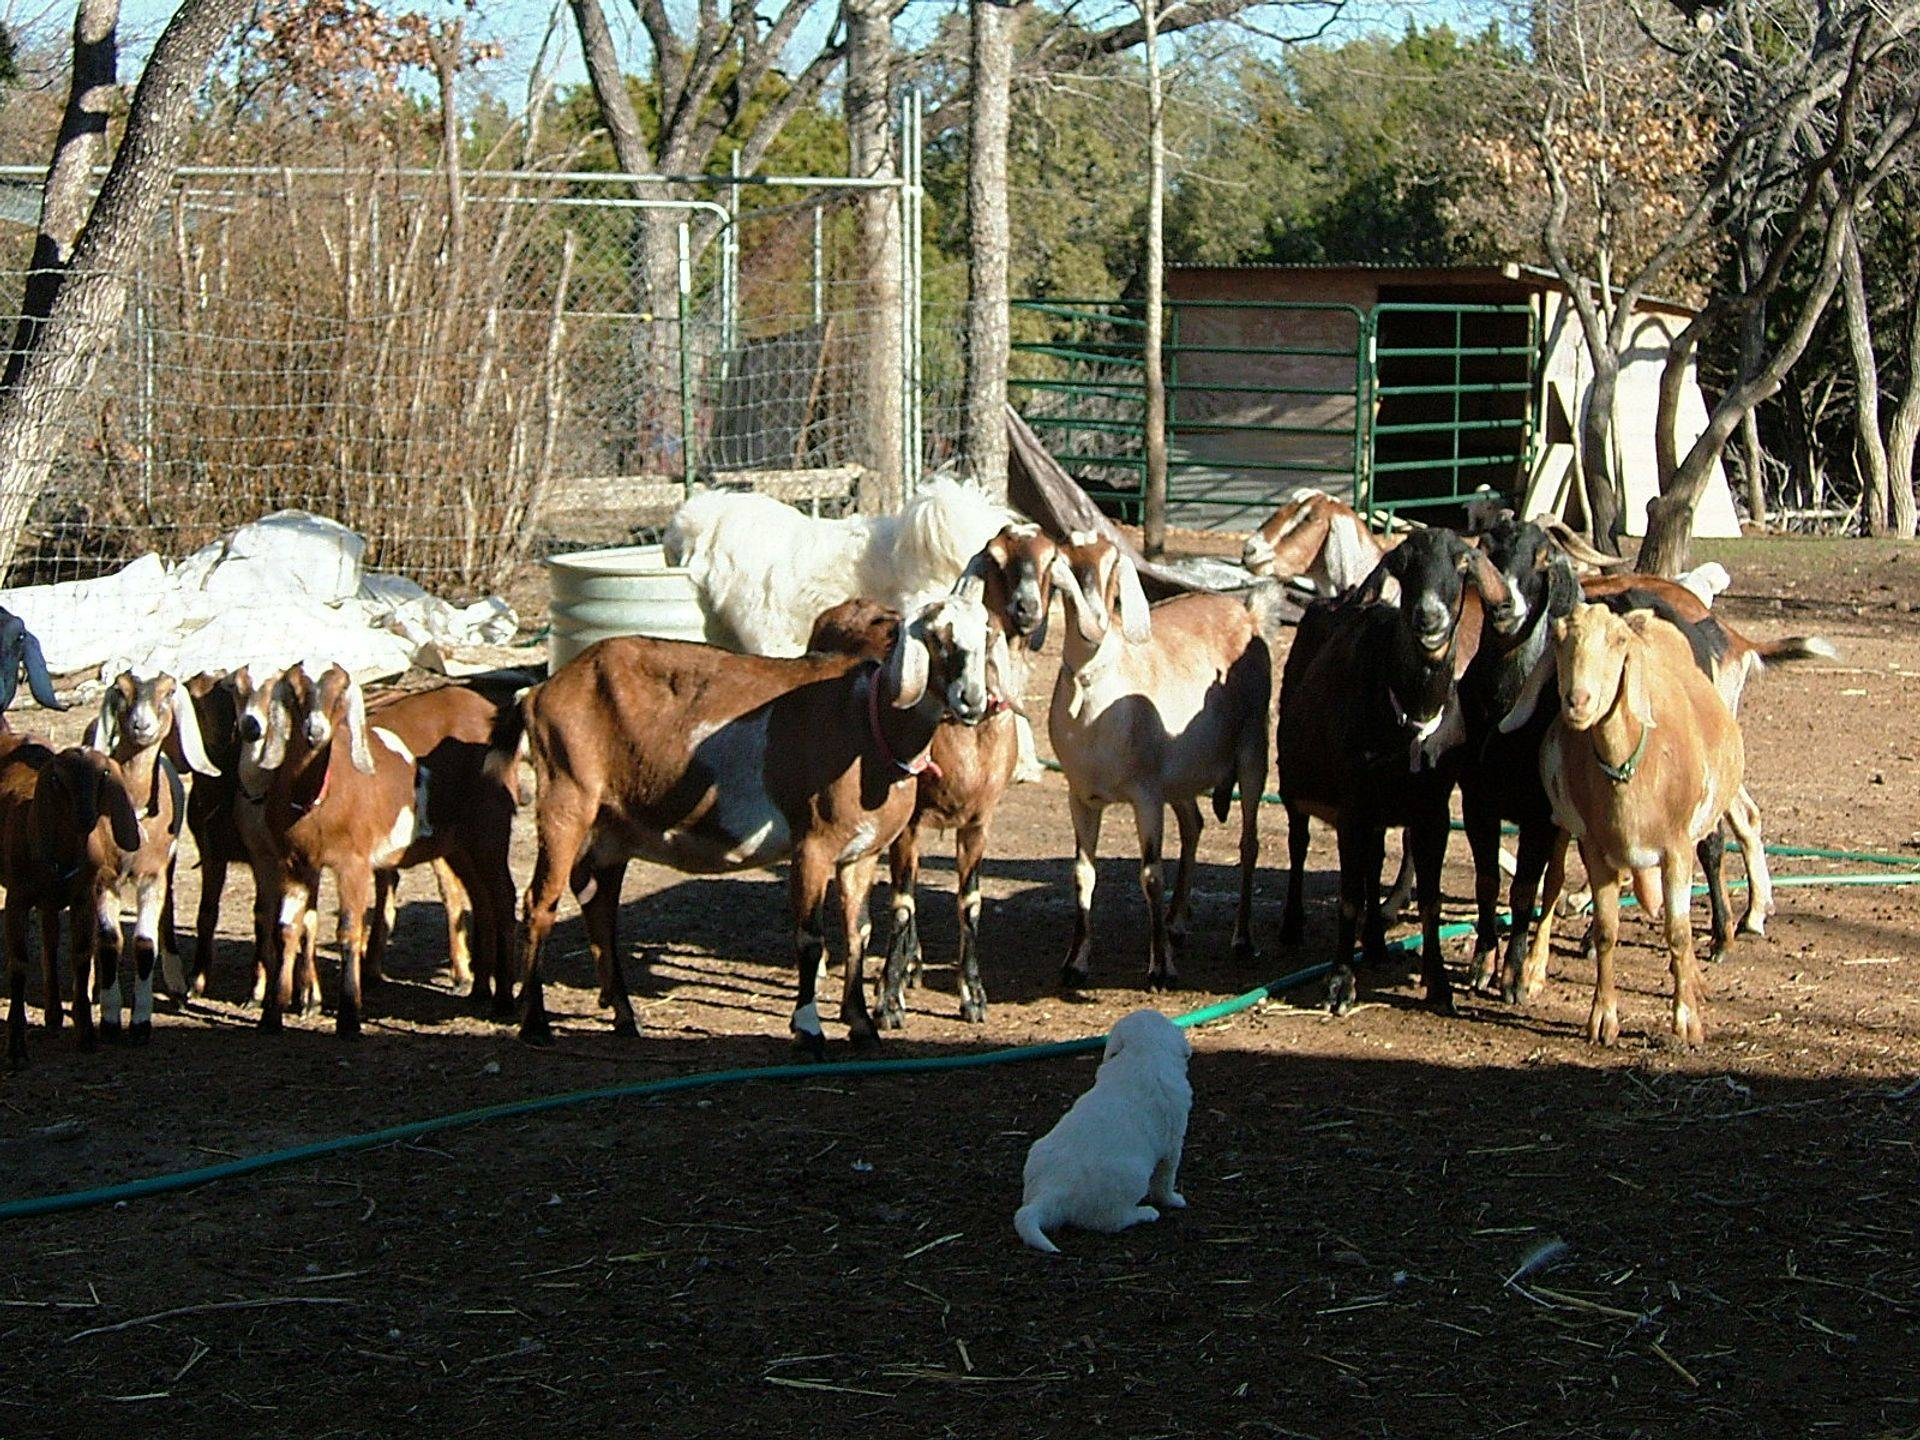 Curious goats checking out the new guy